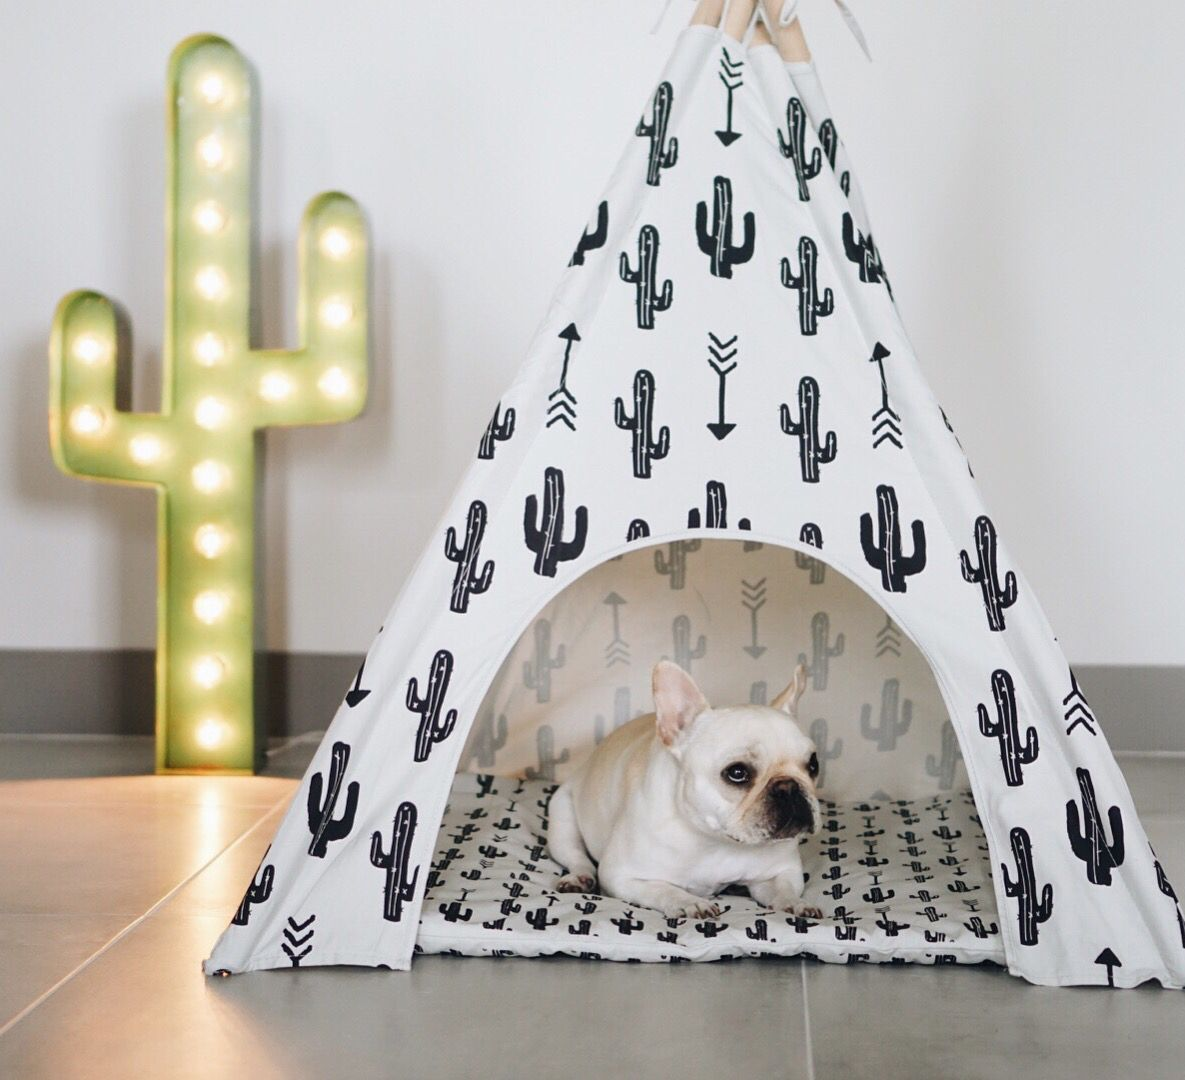 cactus teepee by Pipolli | Dog boutique, Dogs, Dog